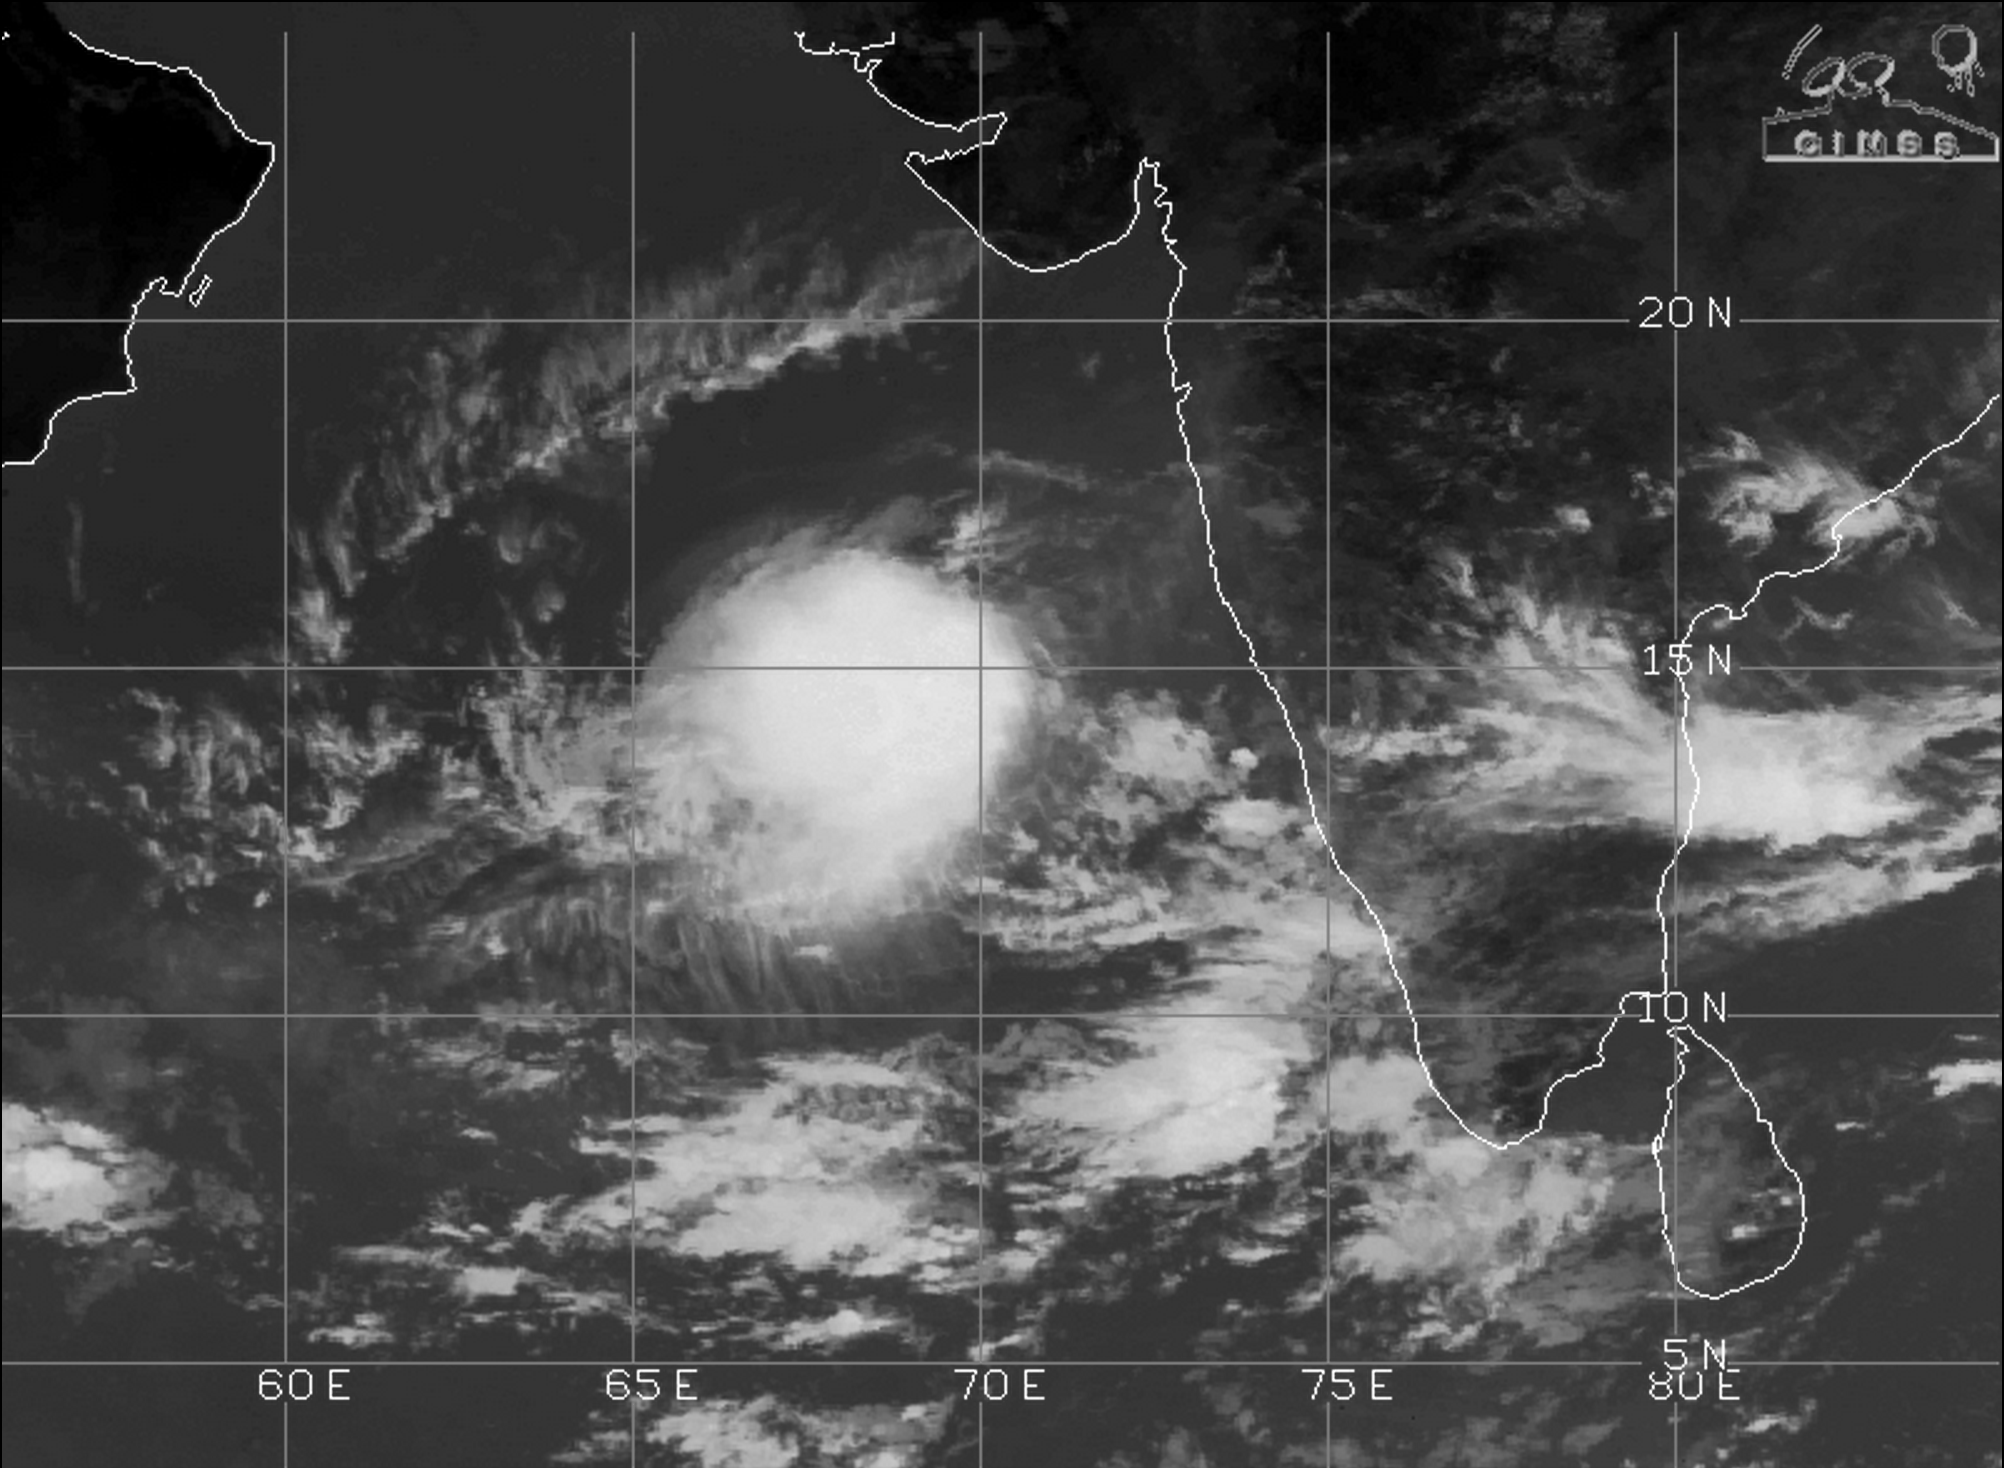 The image shows the formation of tropical depression in the Arabian Sea as can be seen in the satellite image on October 9   Courtesy: CIMSS